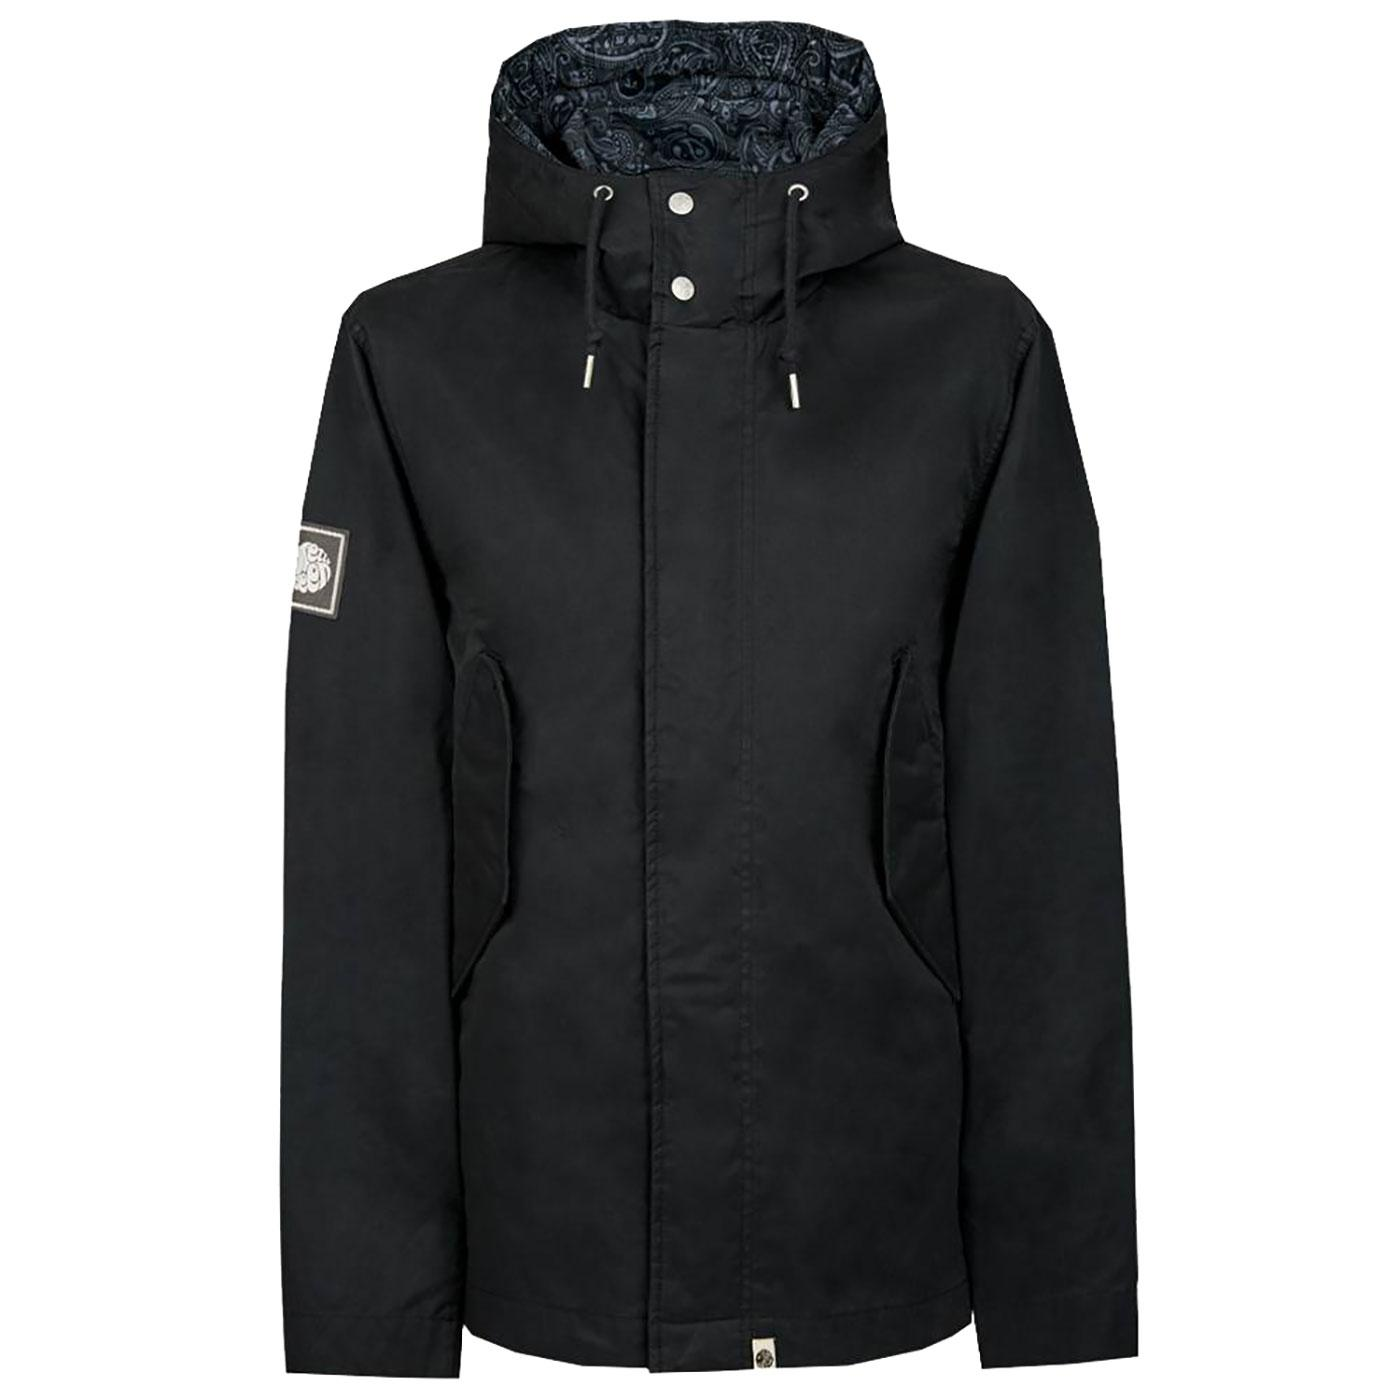 PRETTY GREEN Retro Mod Hooded Cotton Jacket BLACK